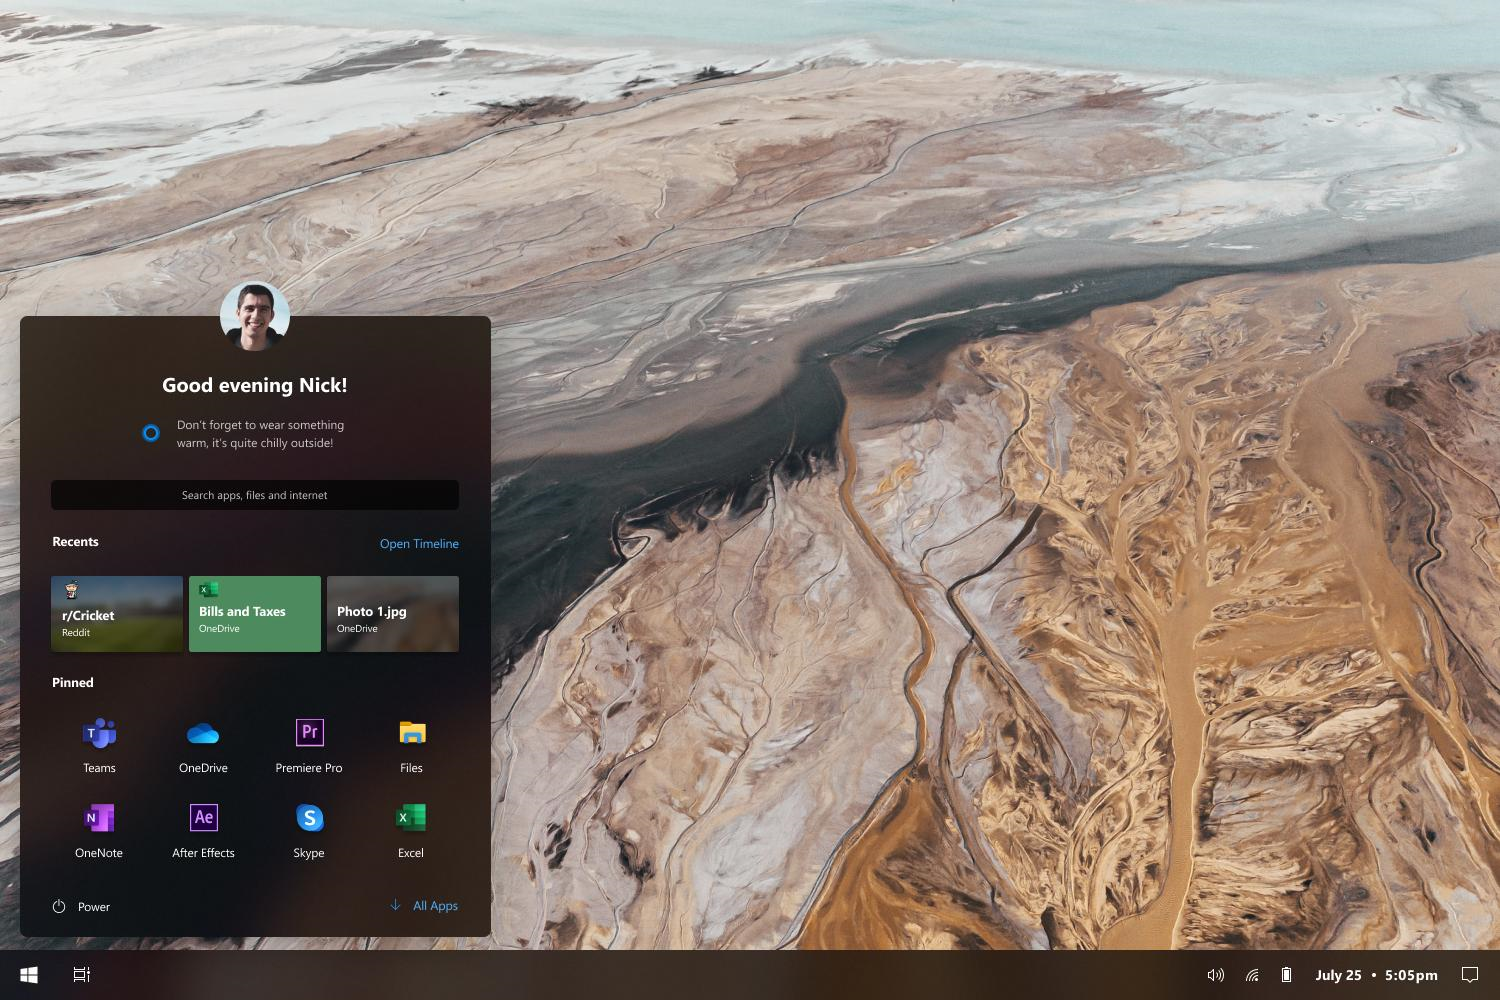 il-nuovo-menu-Start-di-Windows 10